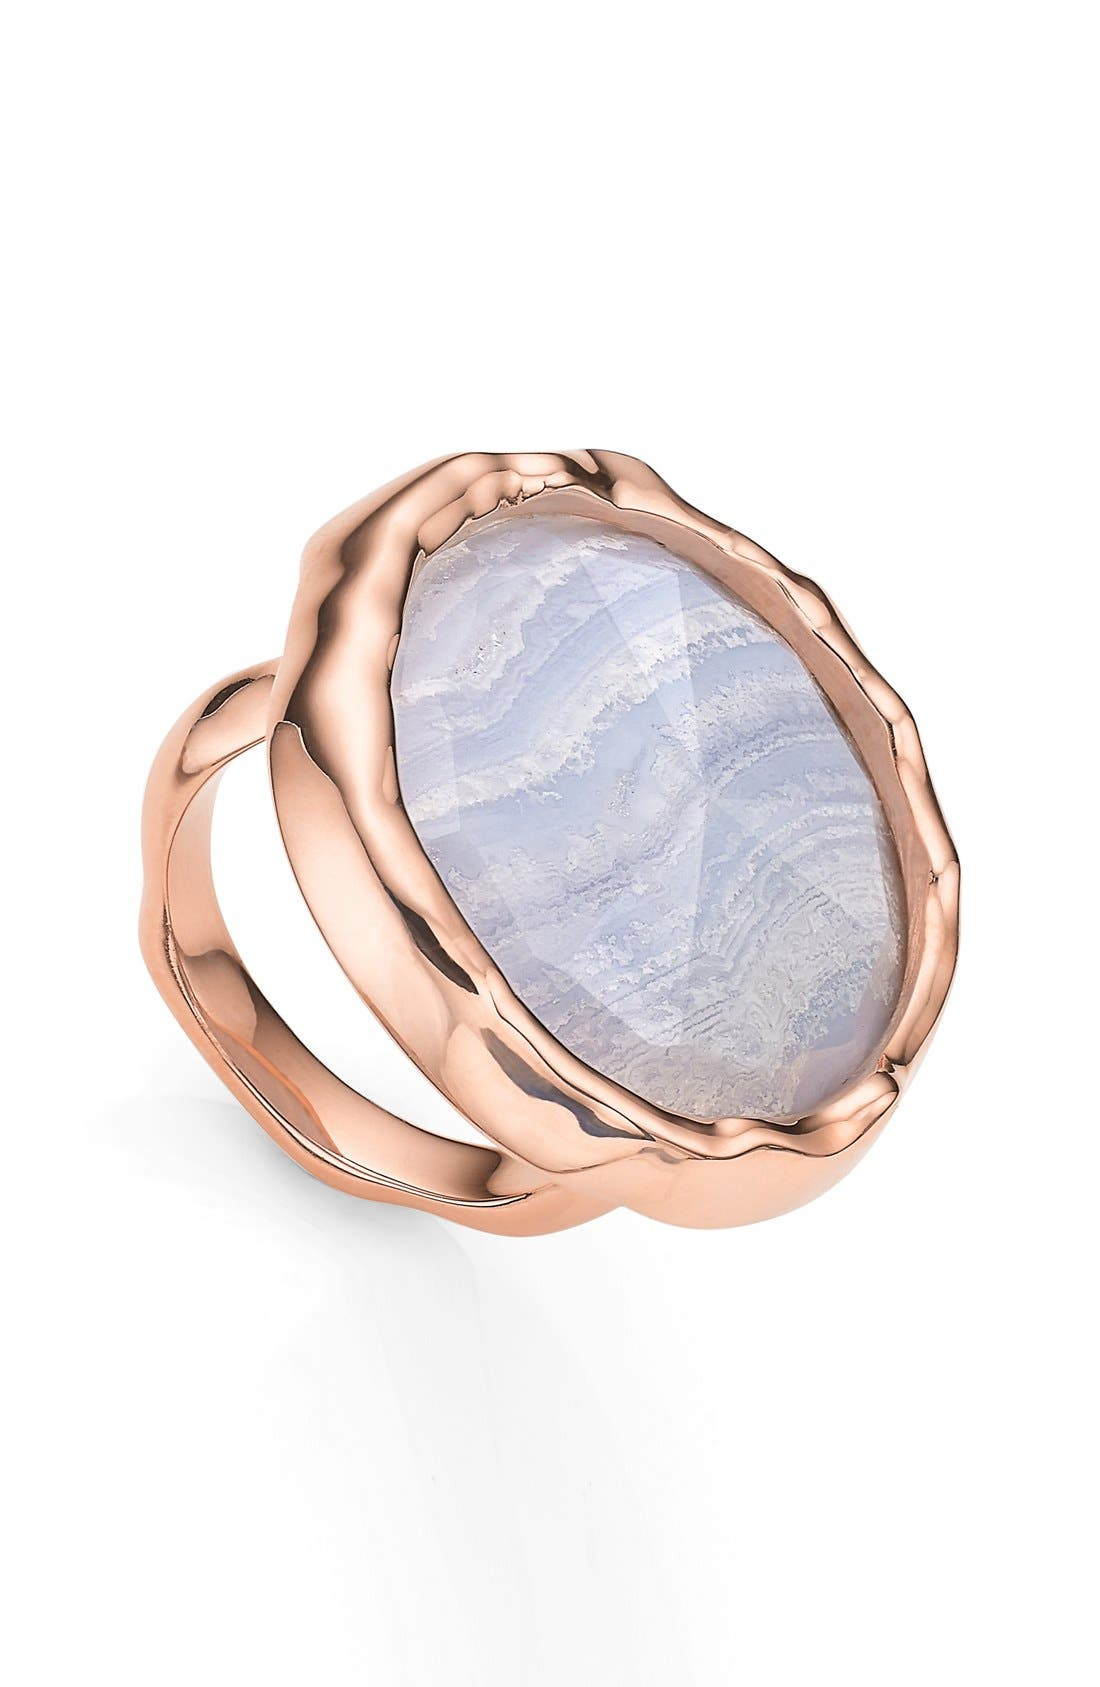 'Siren' Semiprecious Stone Ring,                         Main,                         color,